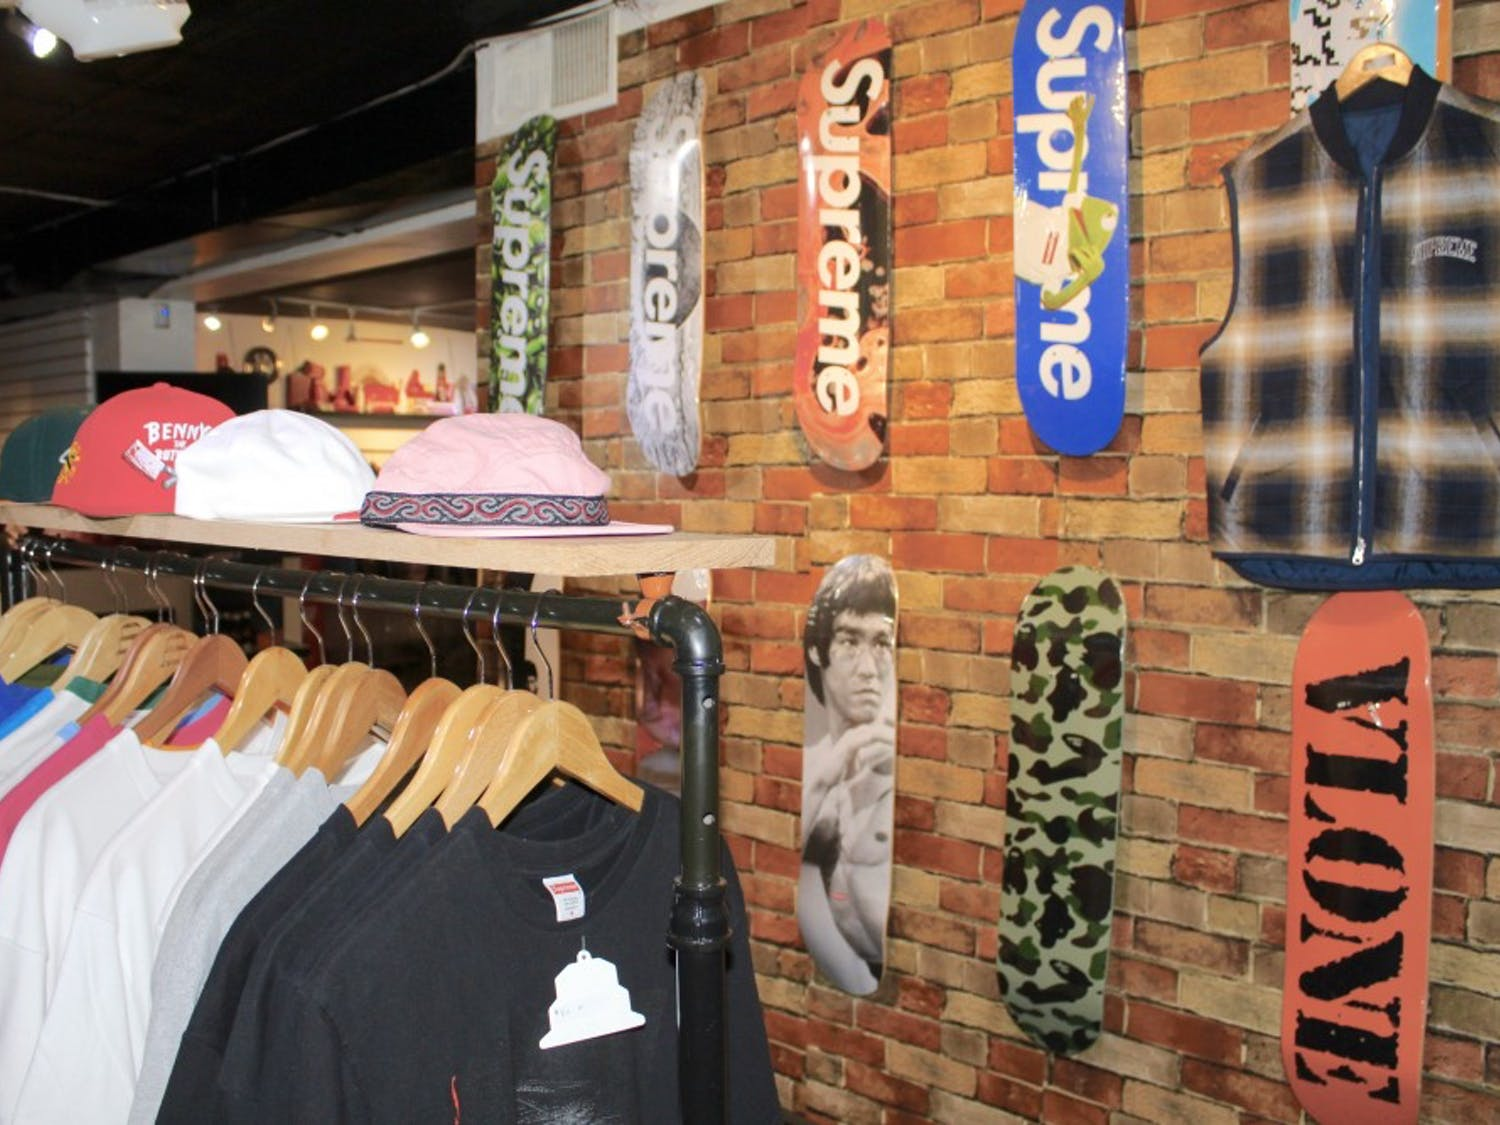 The Cellar on Elmwood Avenue is just one location where students can cop vintage T-shirts and Supreme brand merchandise in Buffalo.